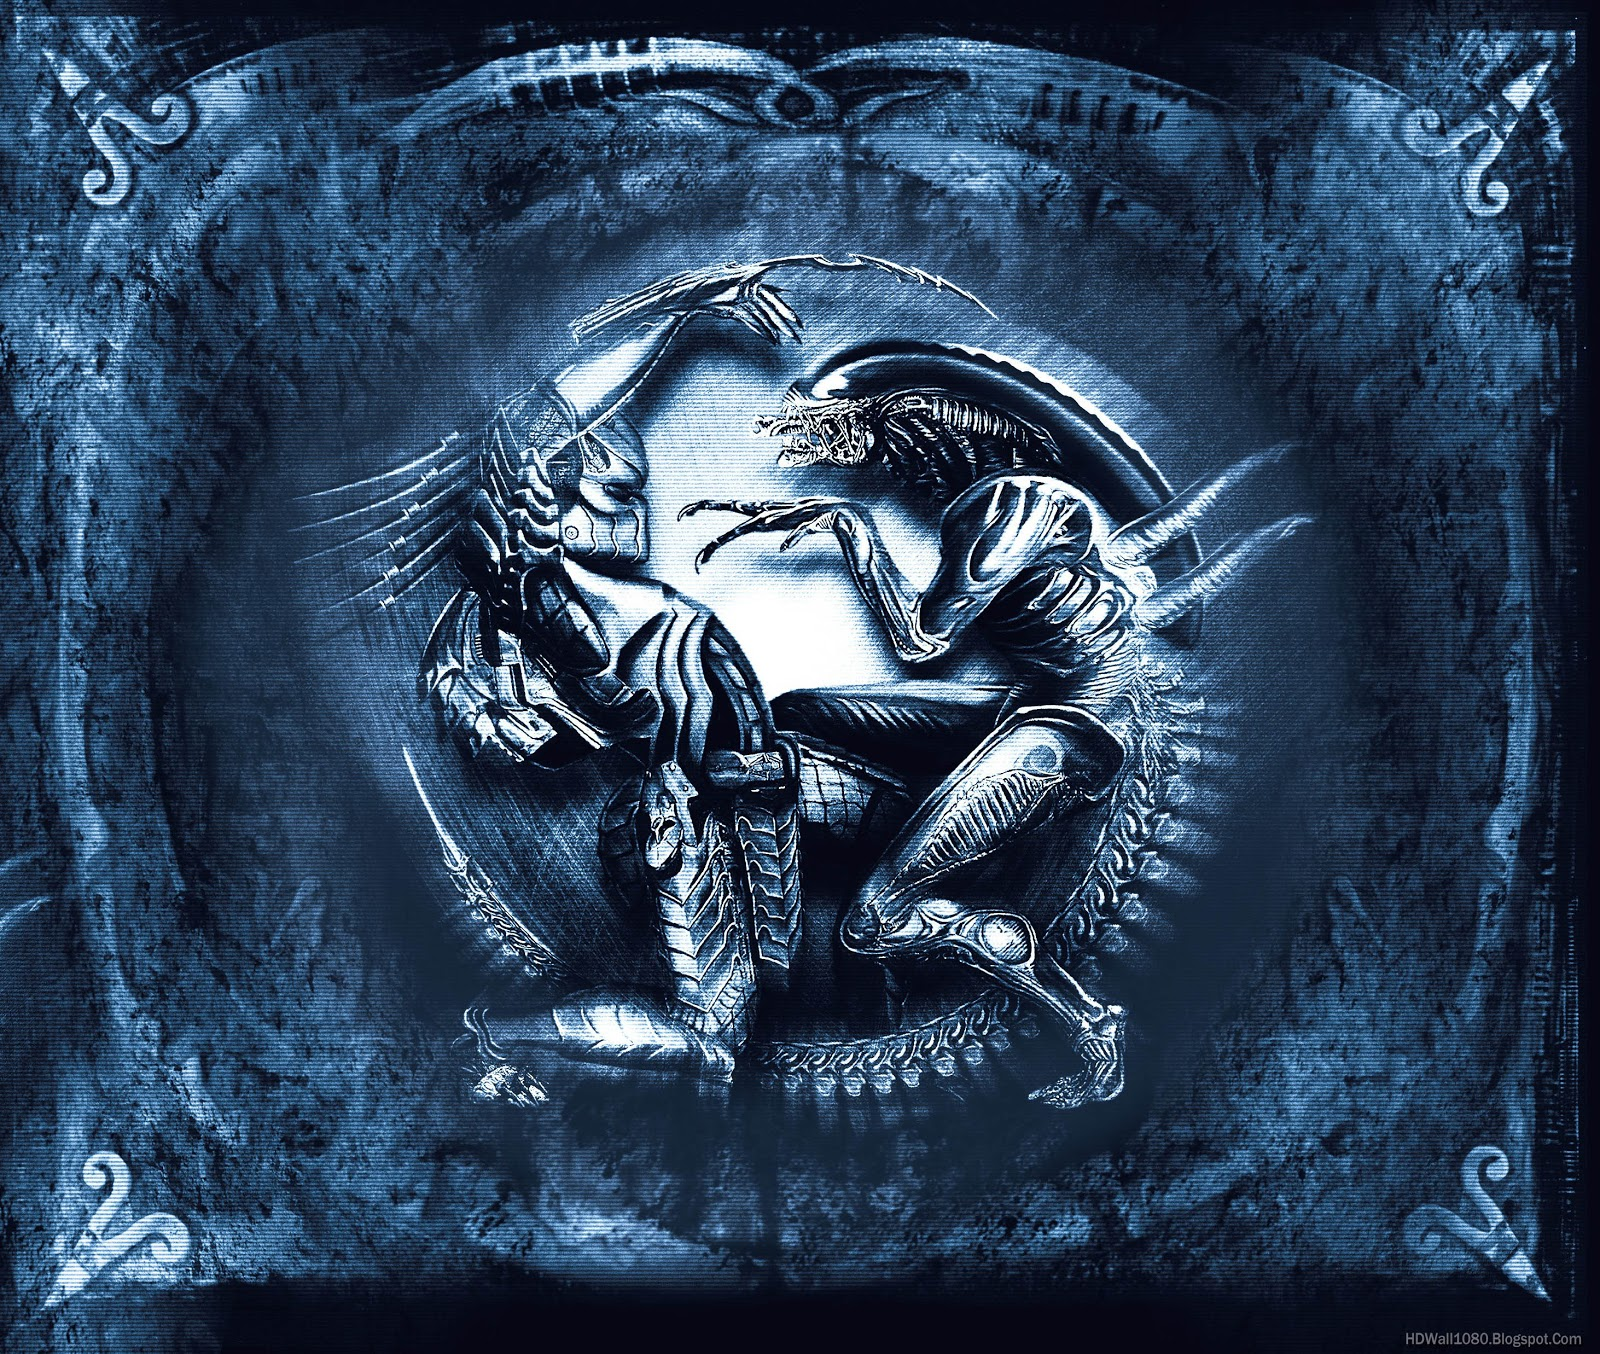 Hd Desktop Background Wallpapers Alien Vs Predator Wallpaper